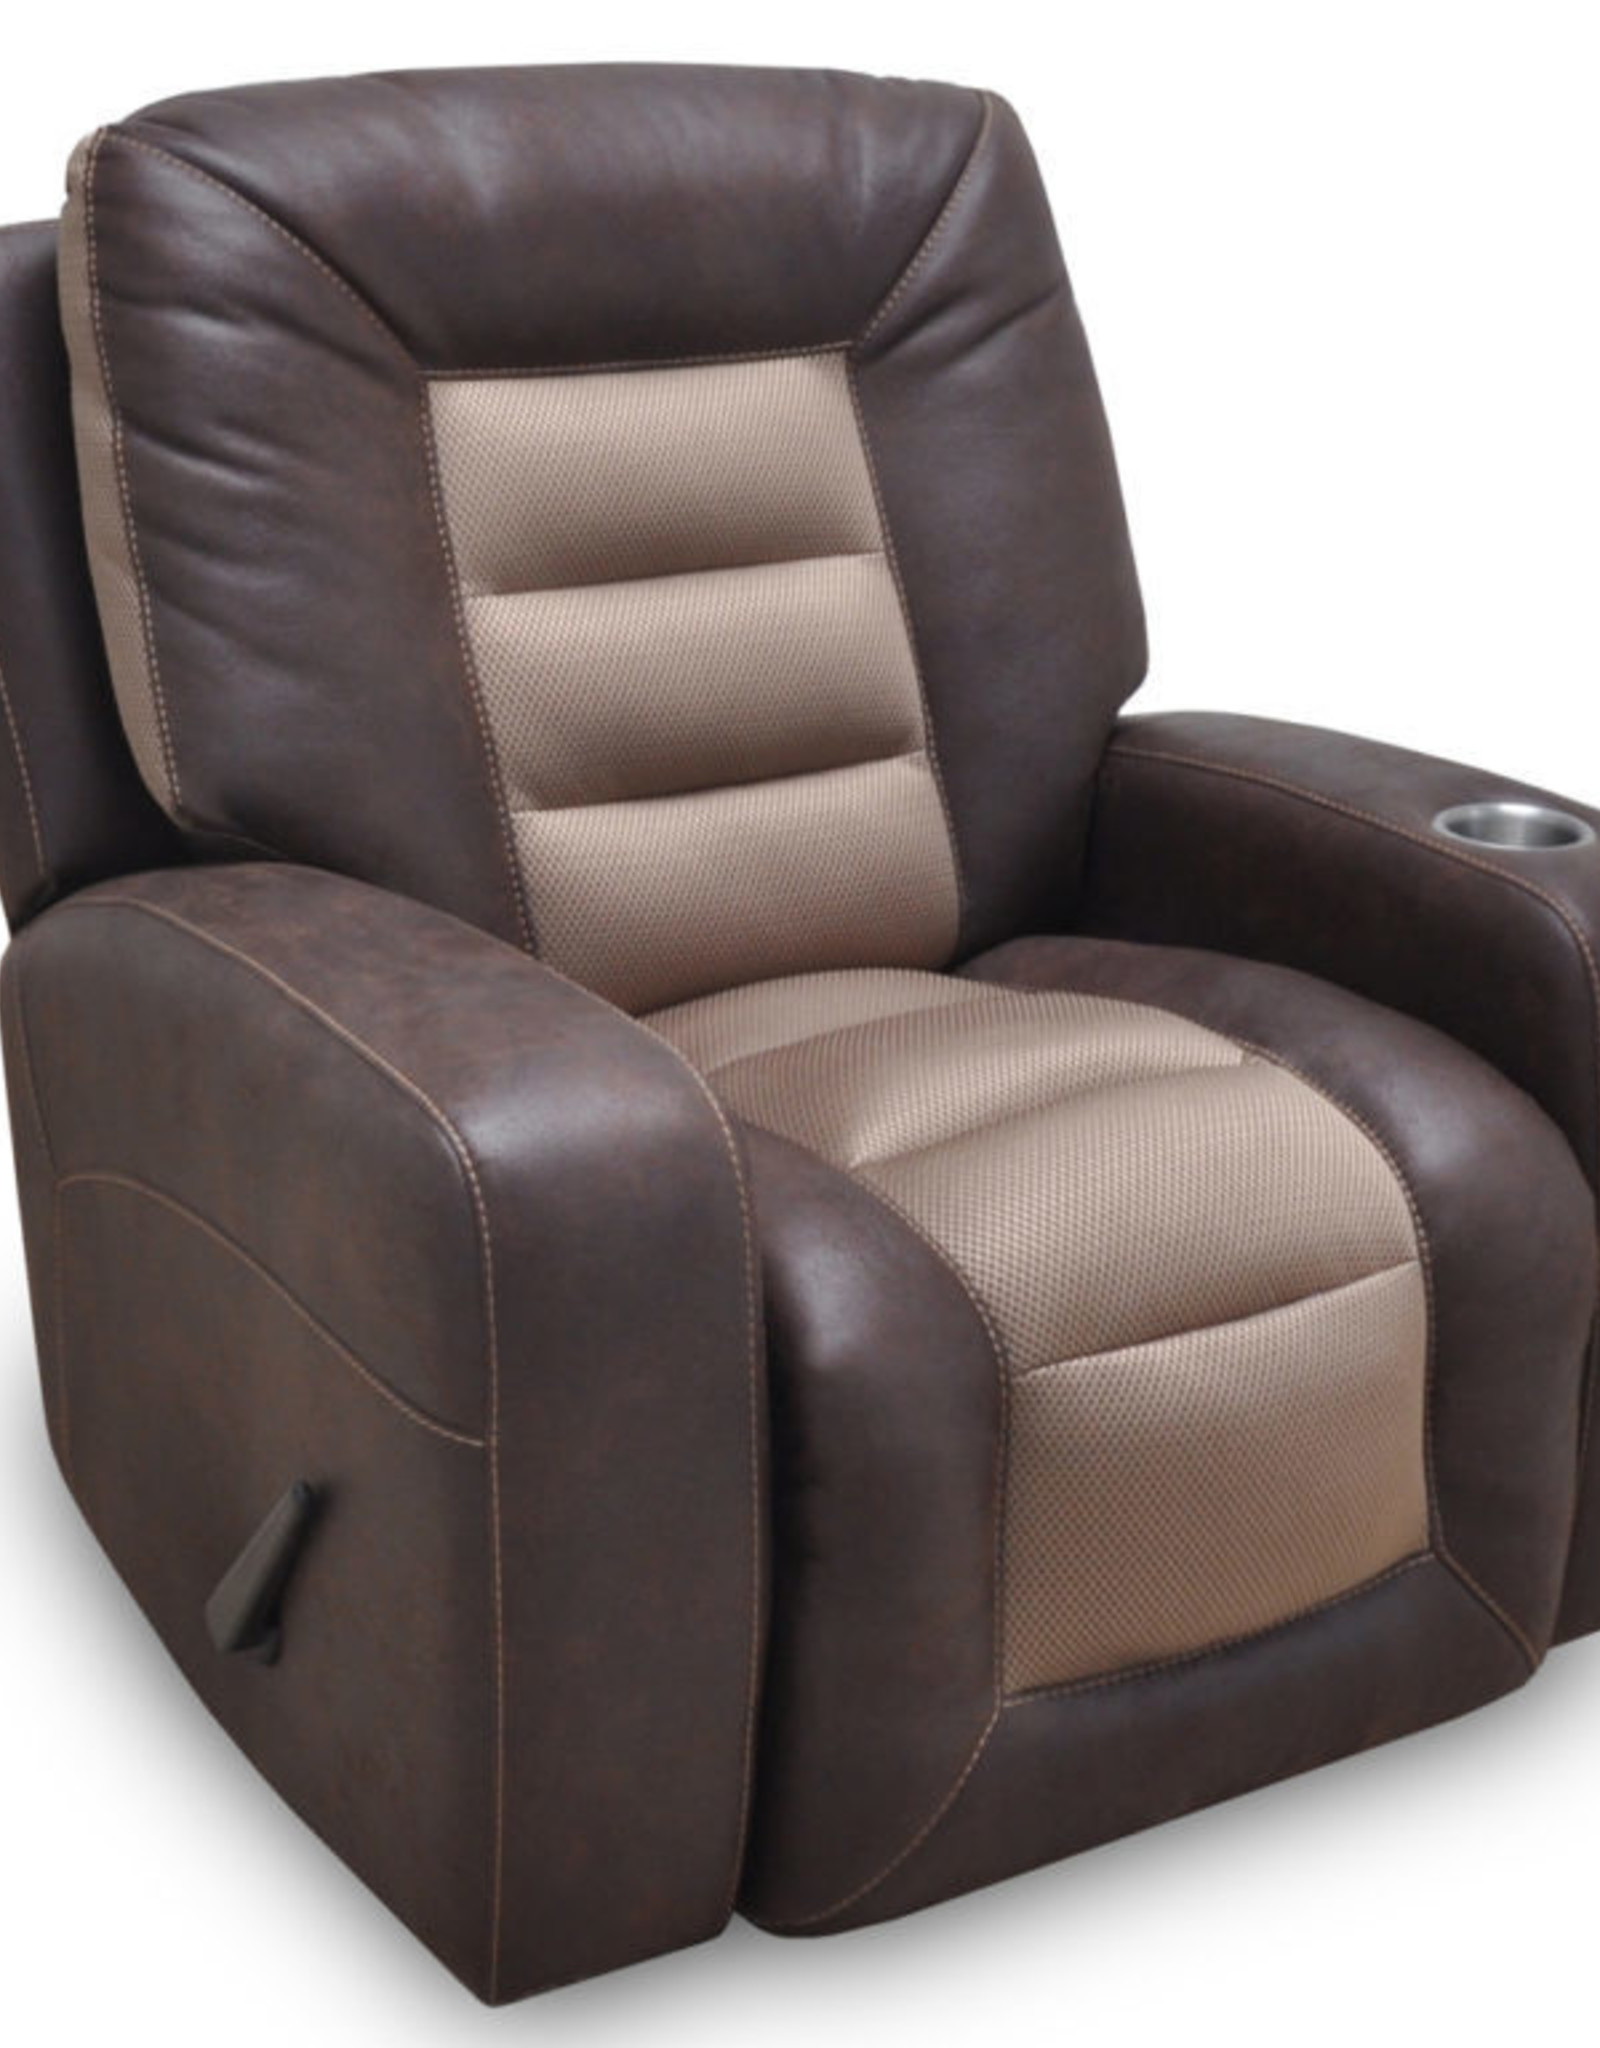 Franklin Branson Recliner